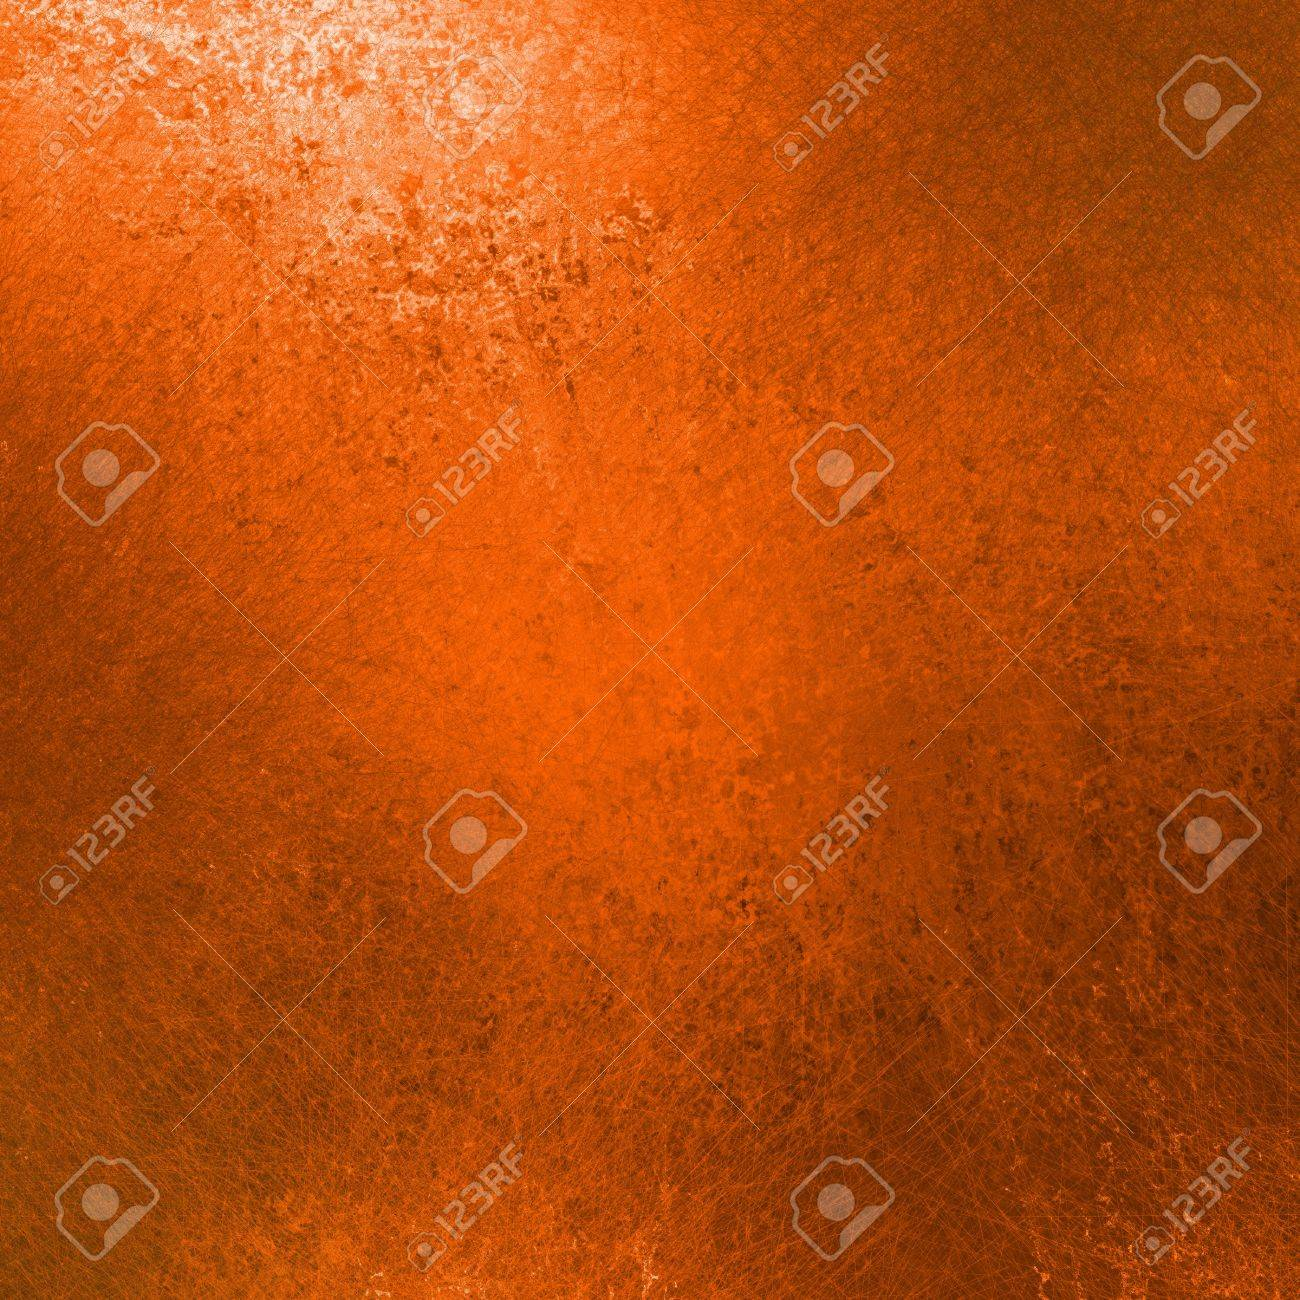 orange background with black vintage grunge texture and white corner highlight for thanksgiving or halloween backgrounds or fall and autumn seasonal backdrops Stock Photo - 13143358